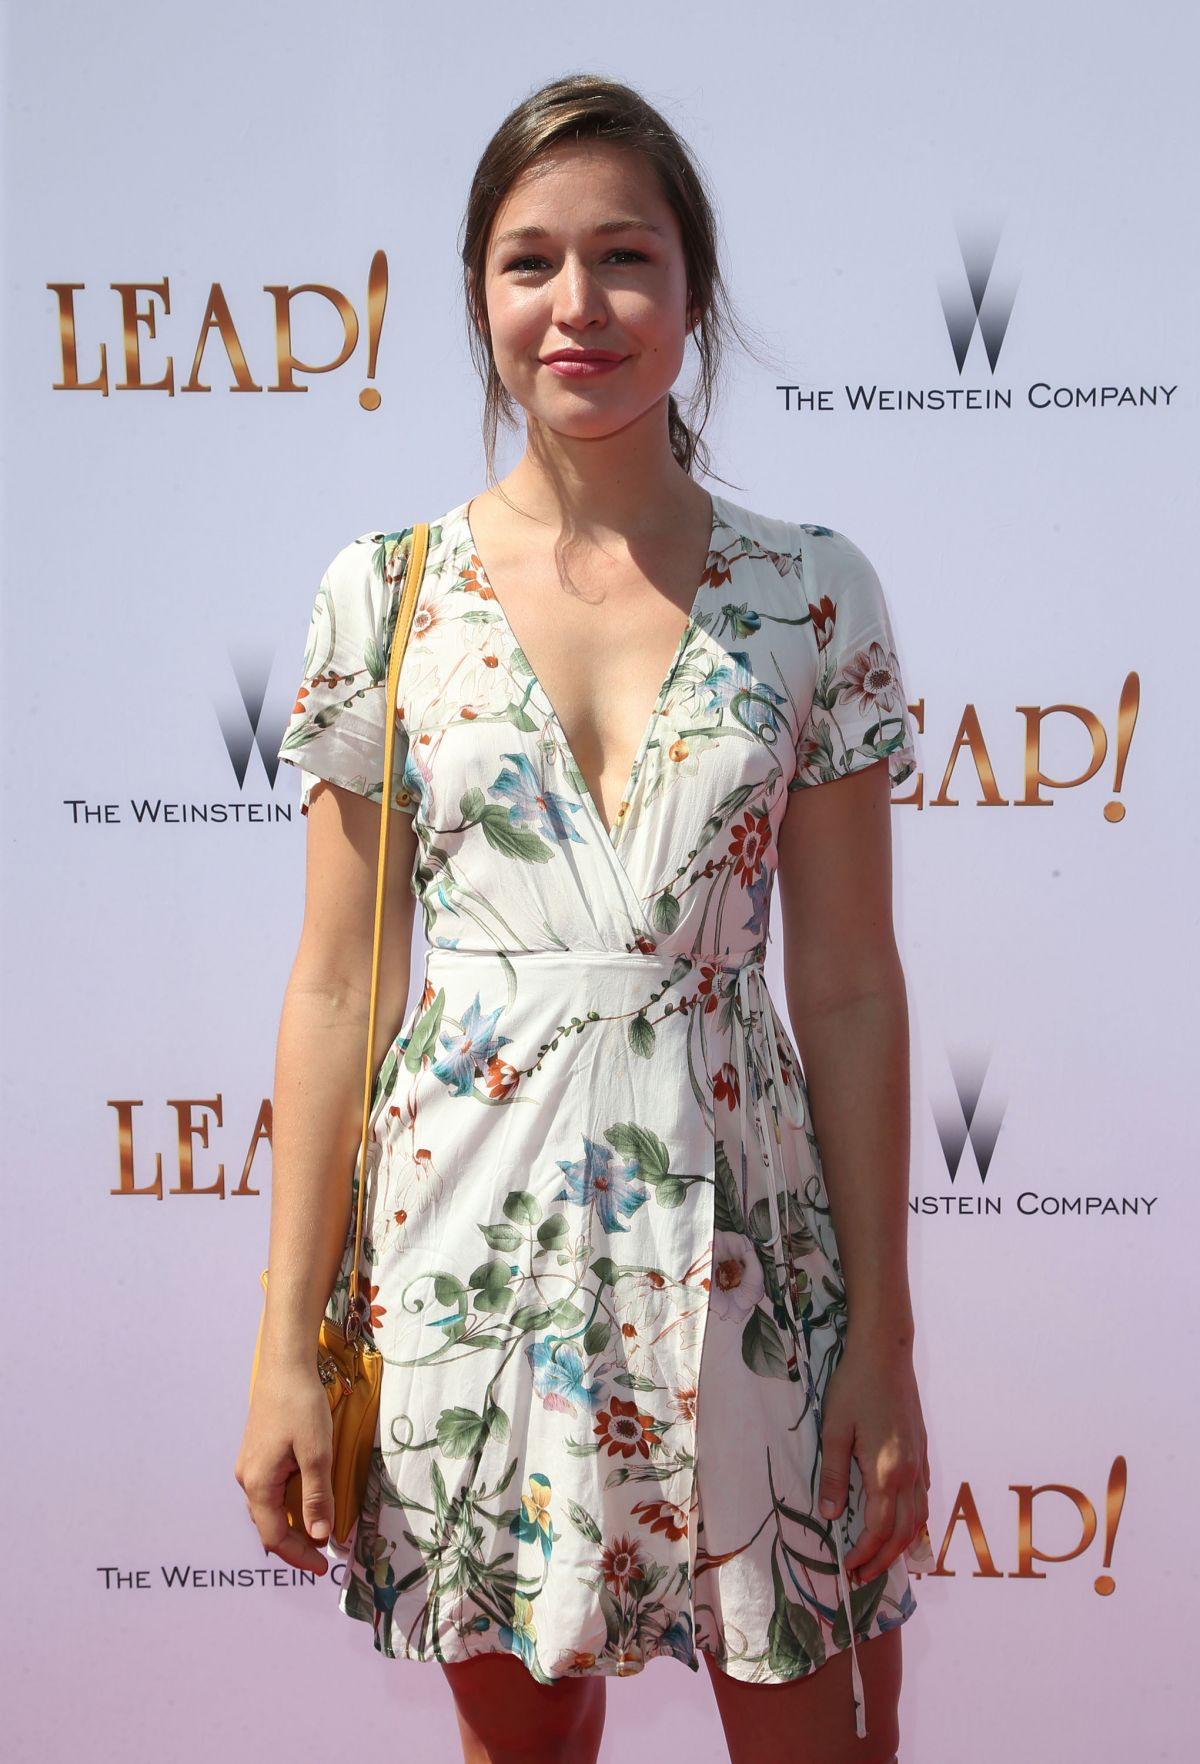 KENDAL CHAPPELLL at Leap! Premiere in Los Angeles 08/19/2017